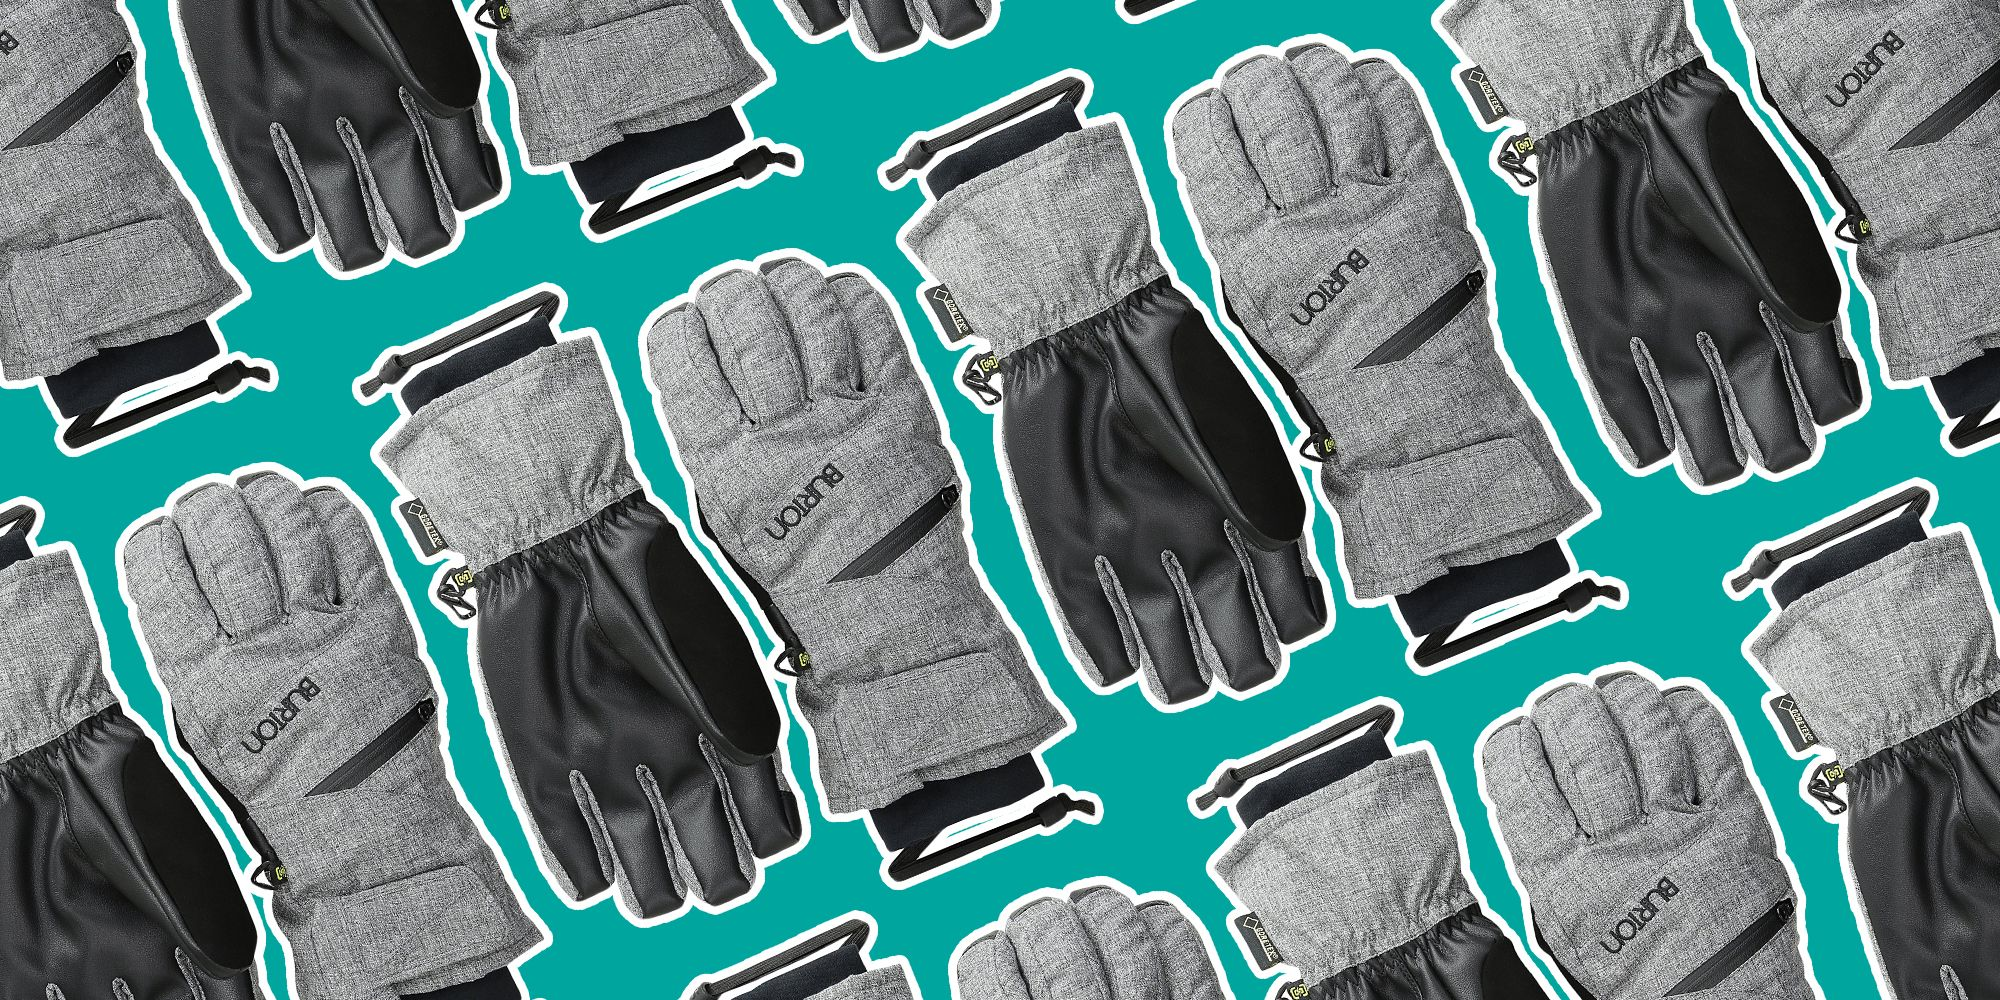 11 Best Thermal Gloves for Winter 2019 - Warmest Thermal Snow Gloves 9f27b22ad